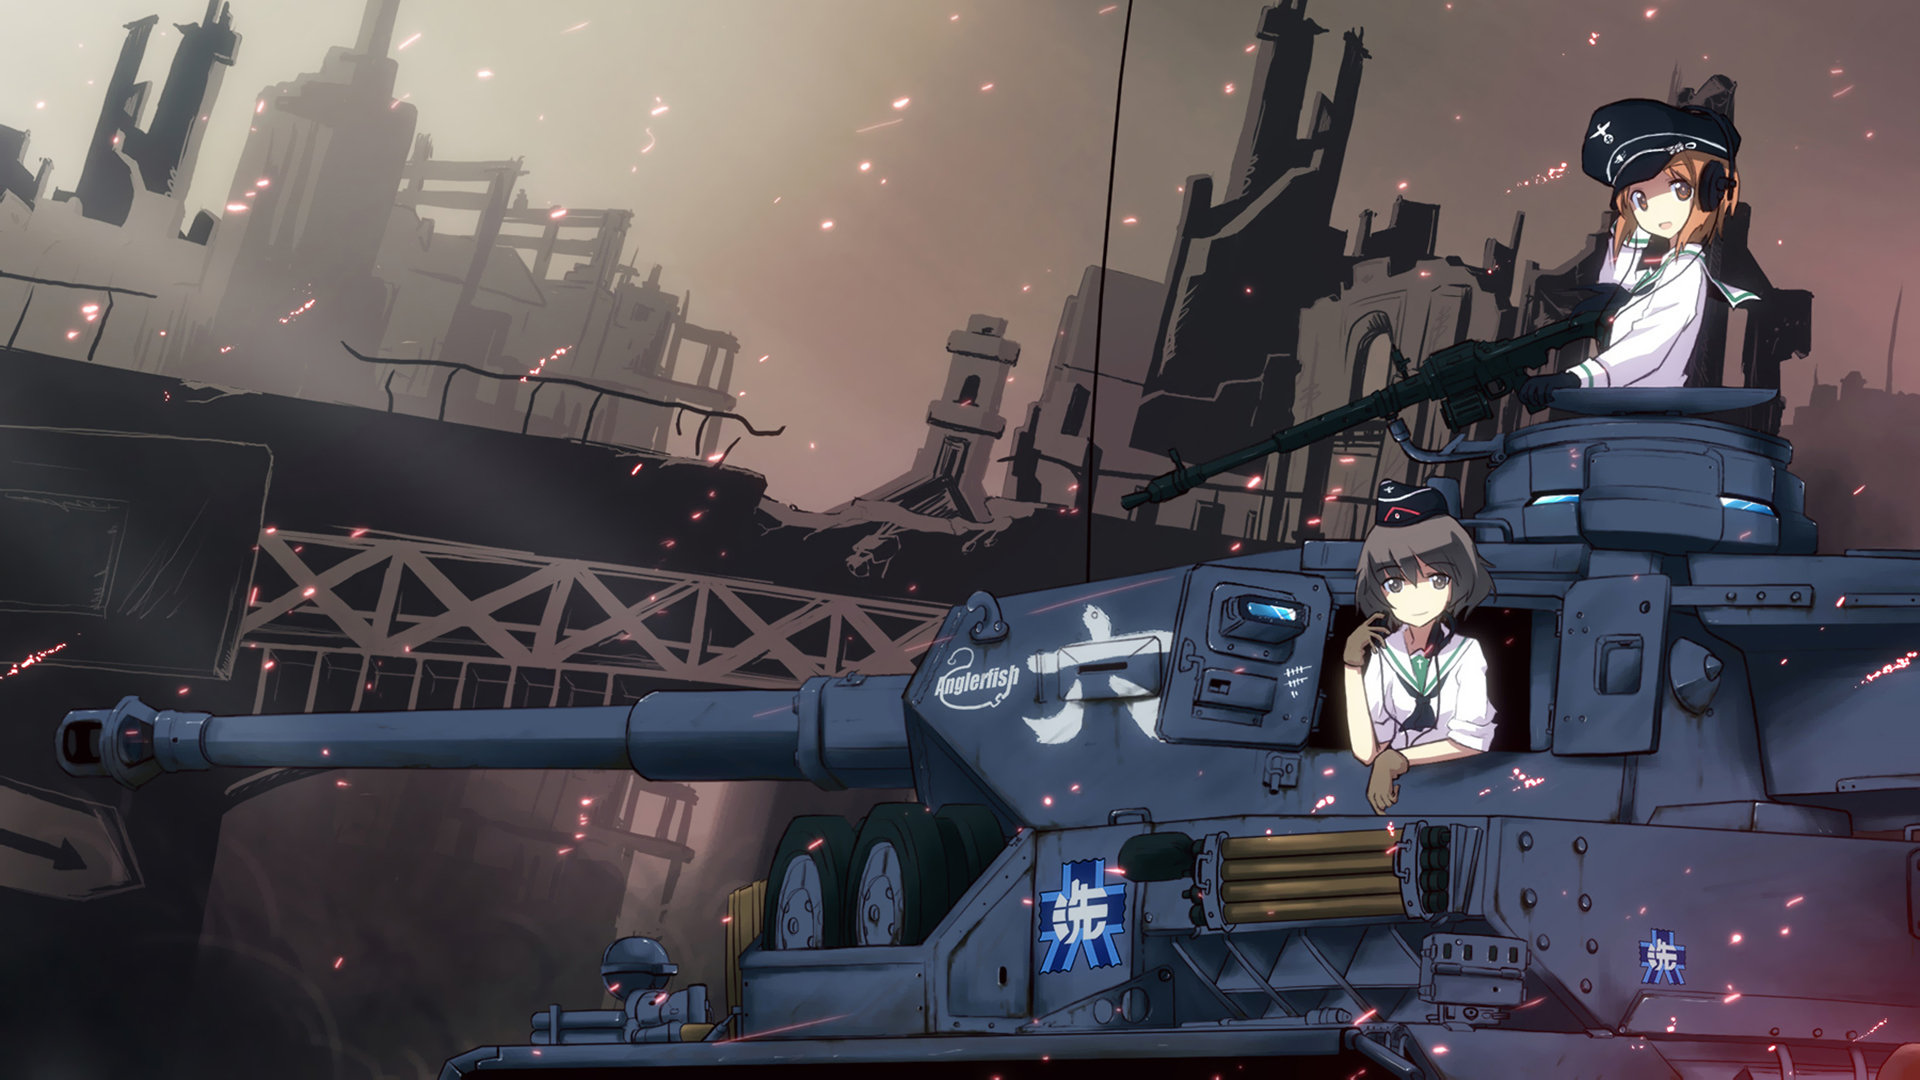 Girls Und Panzer Wallpapers 1920x1080 Full Hd 1080p Desktop